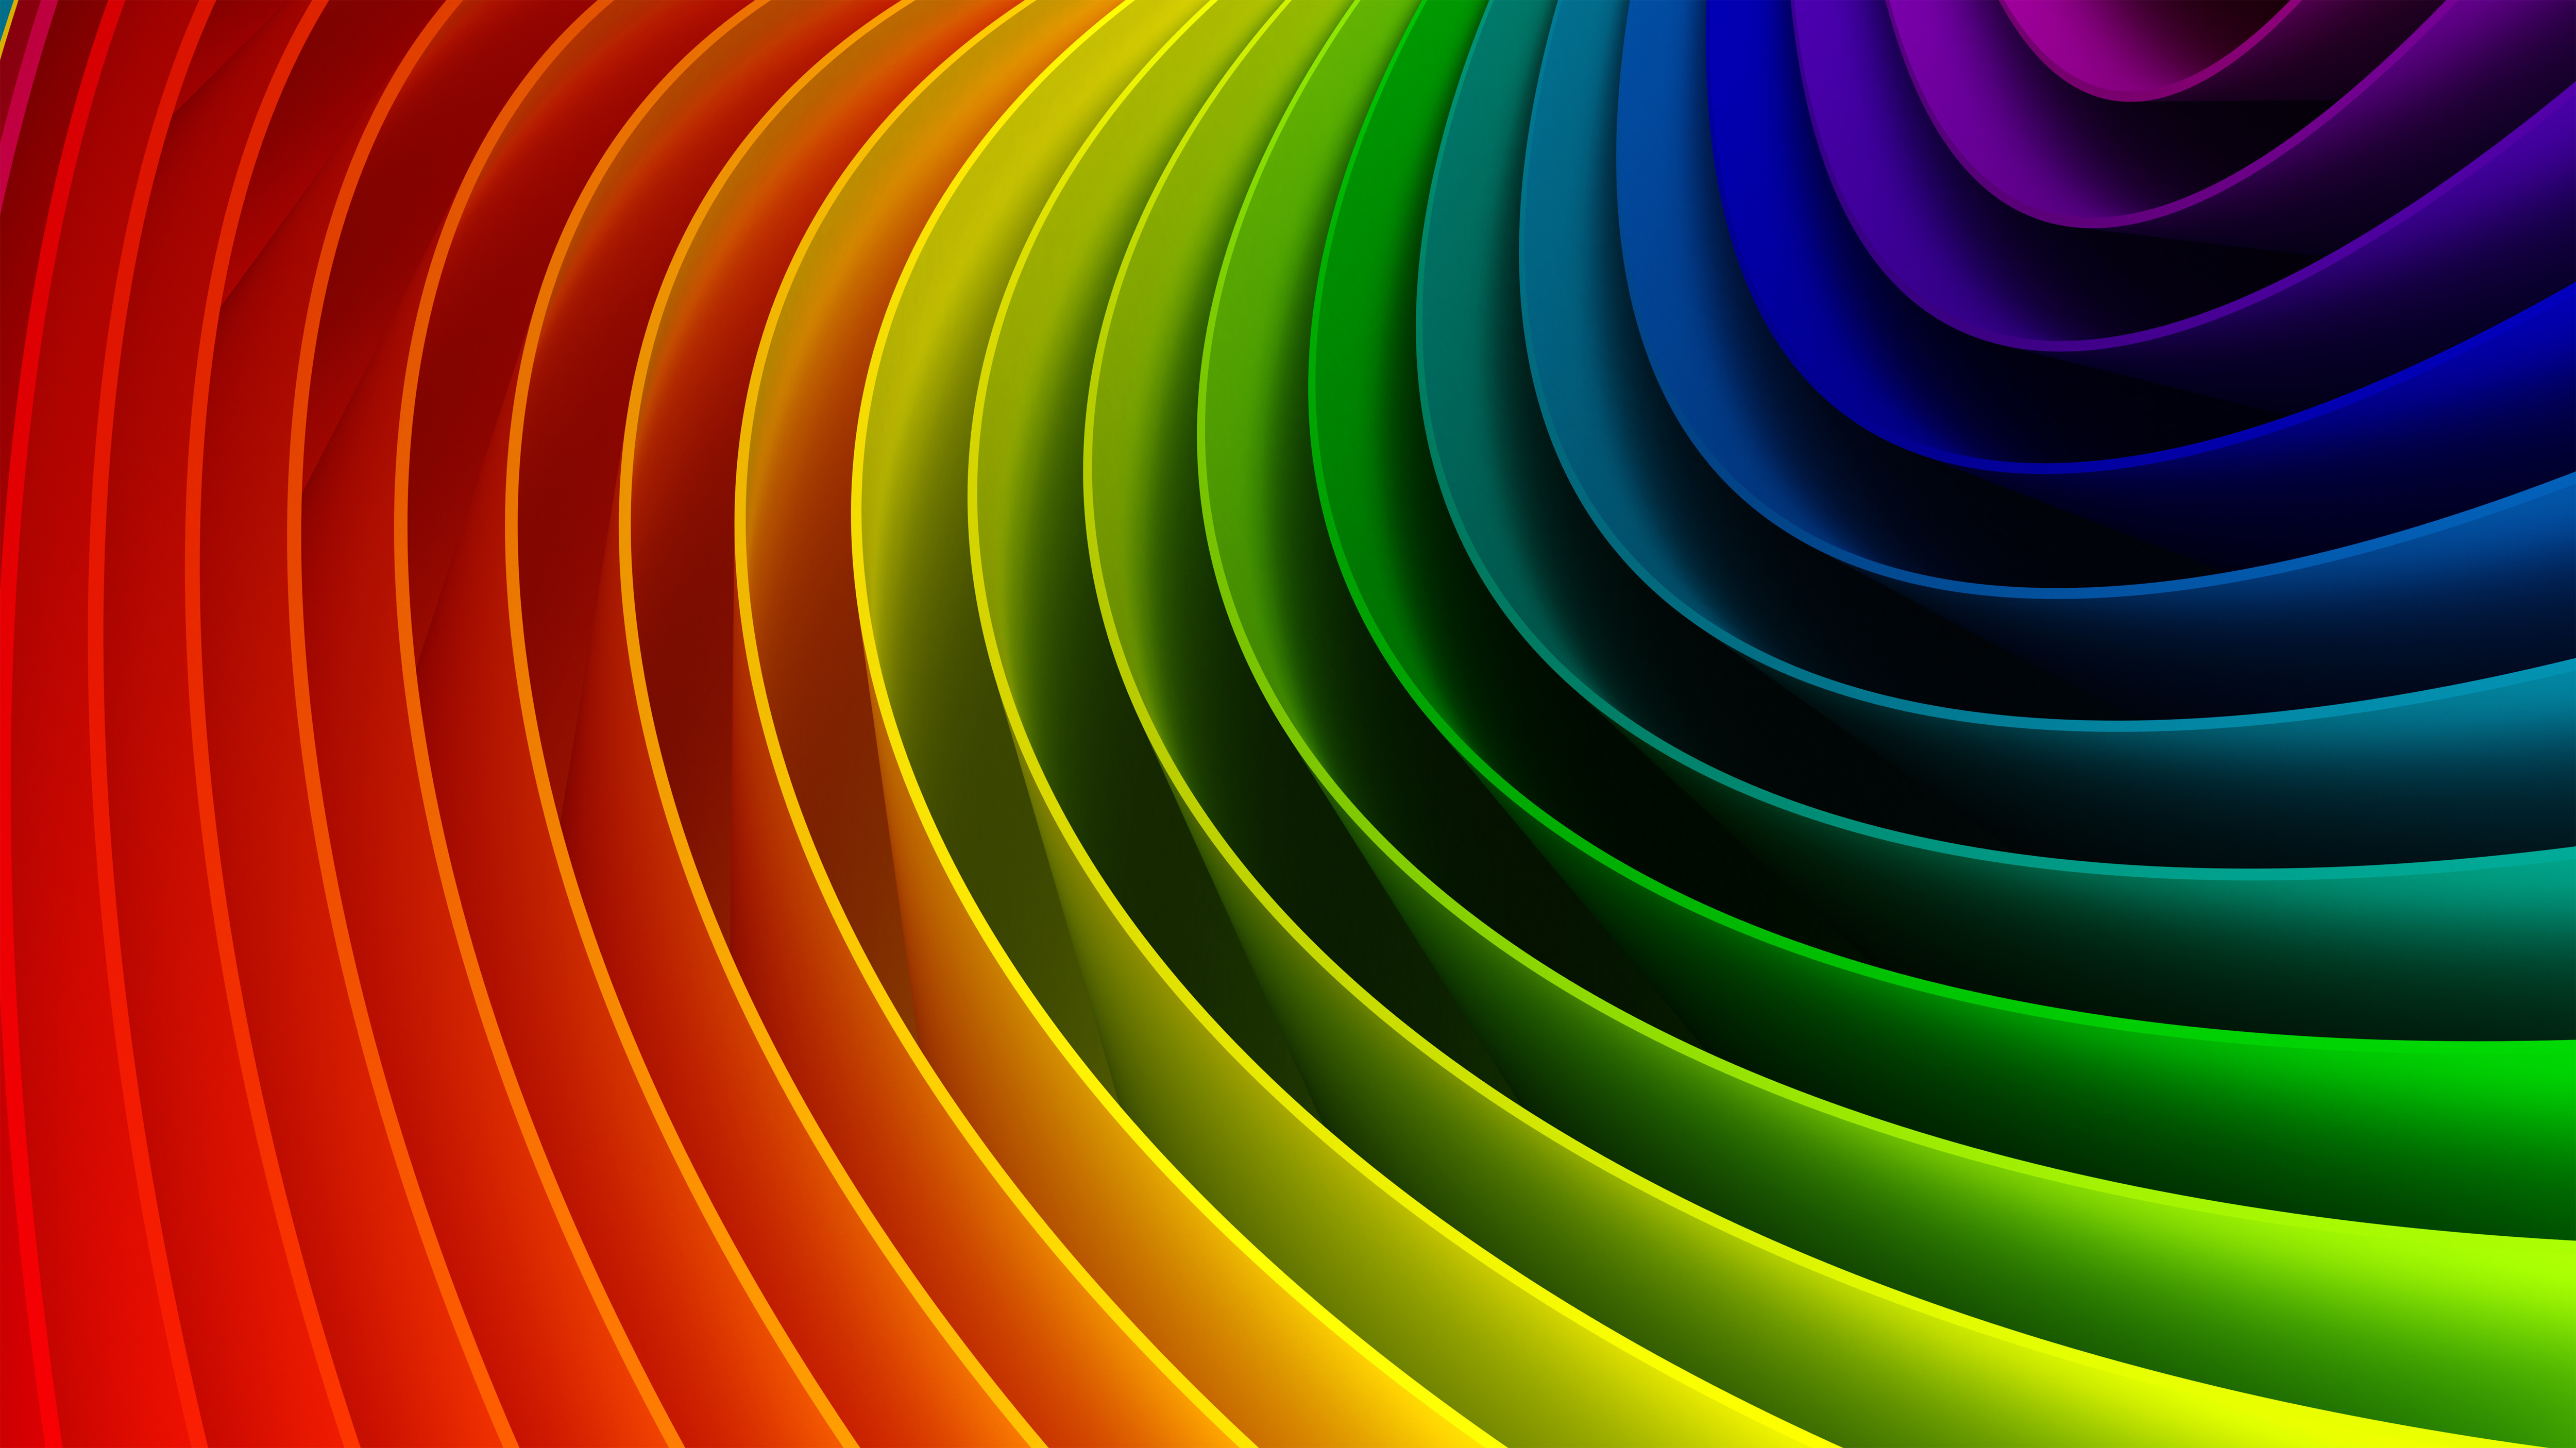 Background image and color - Background Color Rainbow Spectrum Bandwidth Background Wallpaper